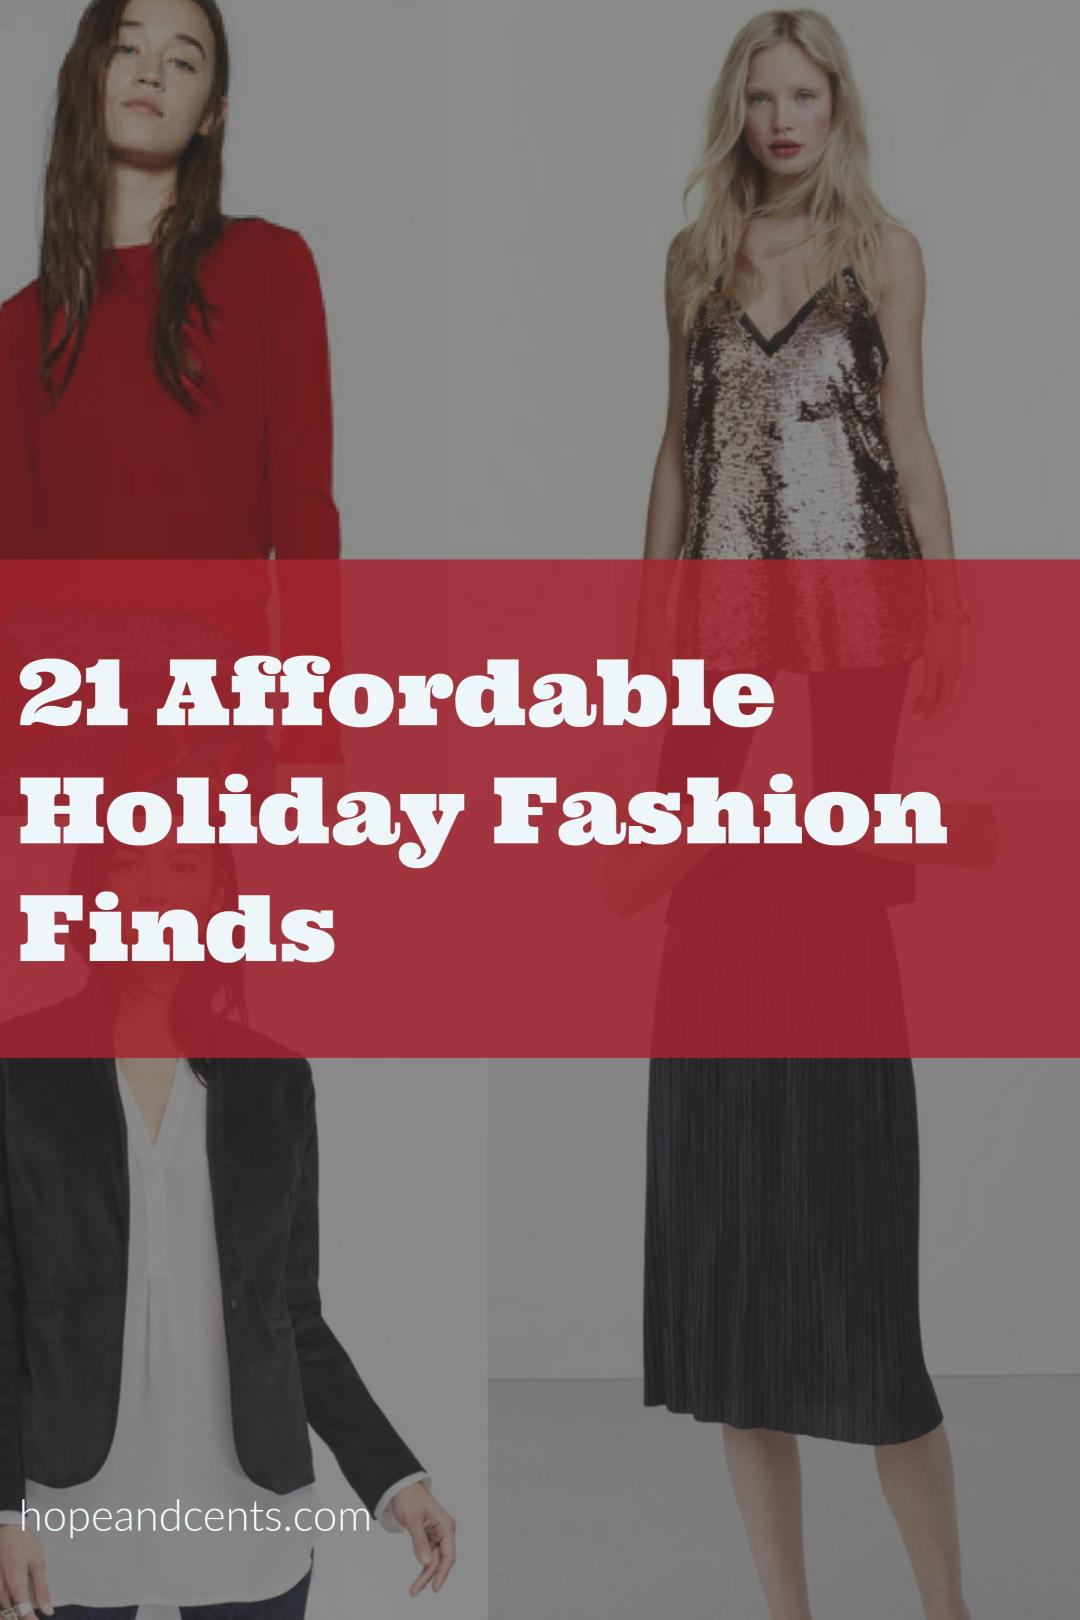 Need something to wear this holiday season? Check out these affordable and frugal holiday styles. These are so cute and most are under $50.